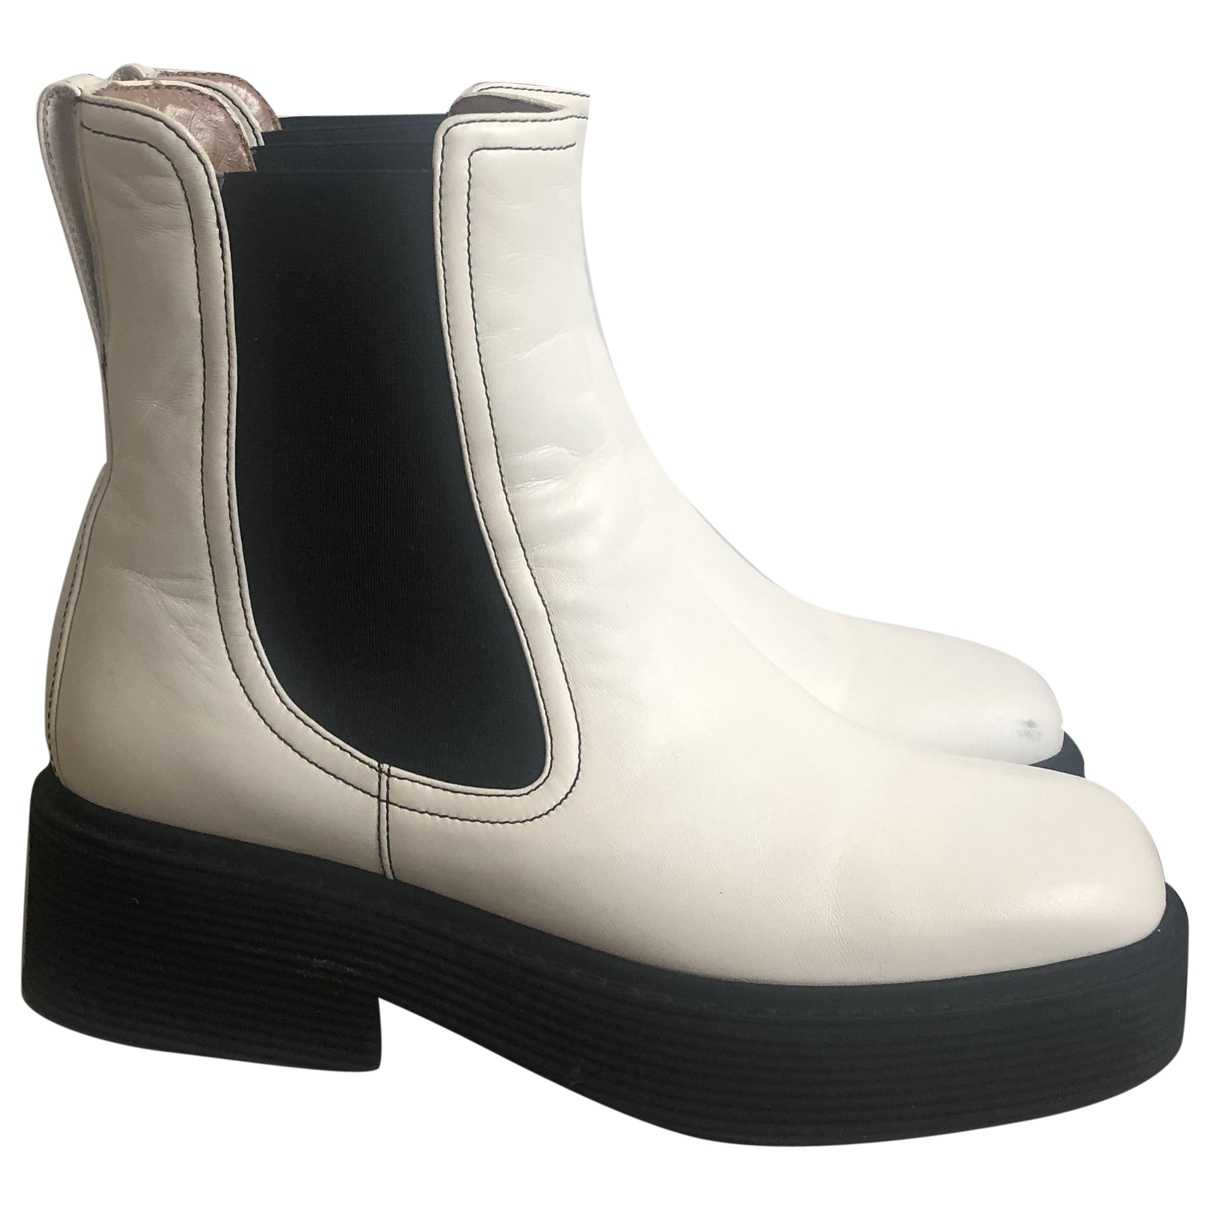 Marni \N White Leather Ankle boots for Women 38 IT